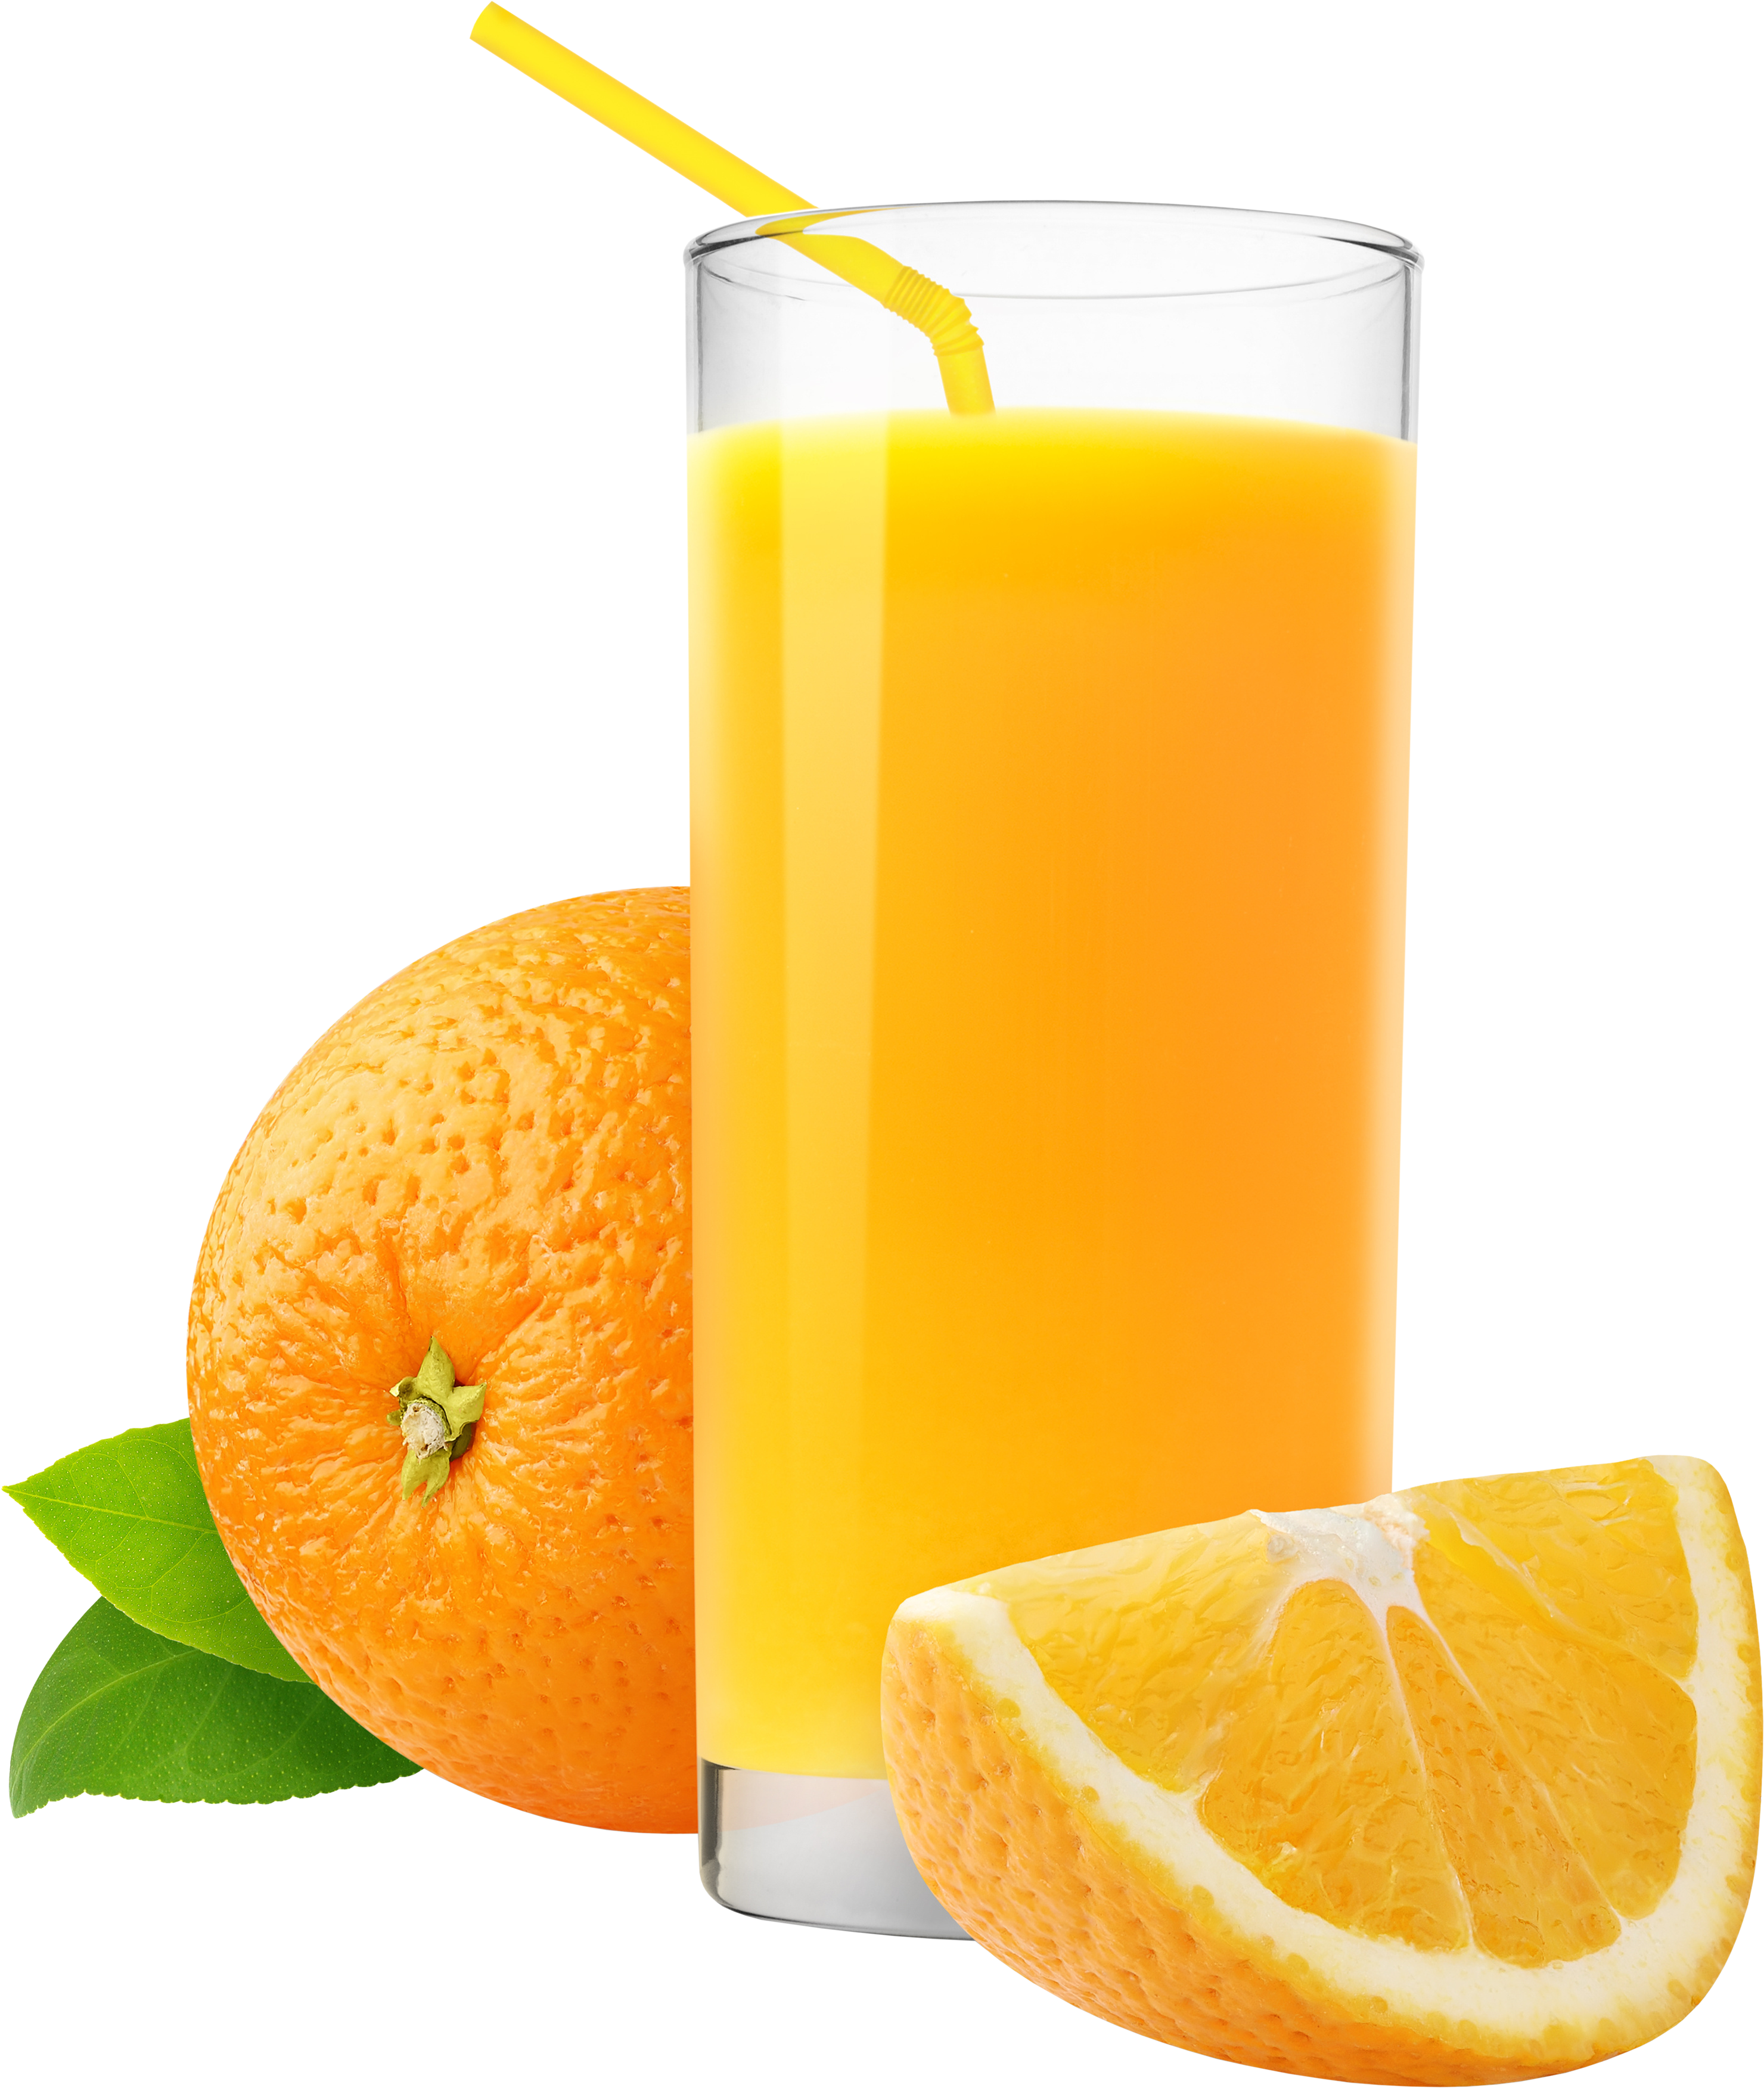 orange juice clip art cliparts #12848